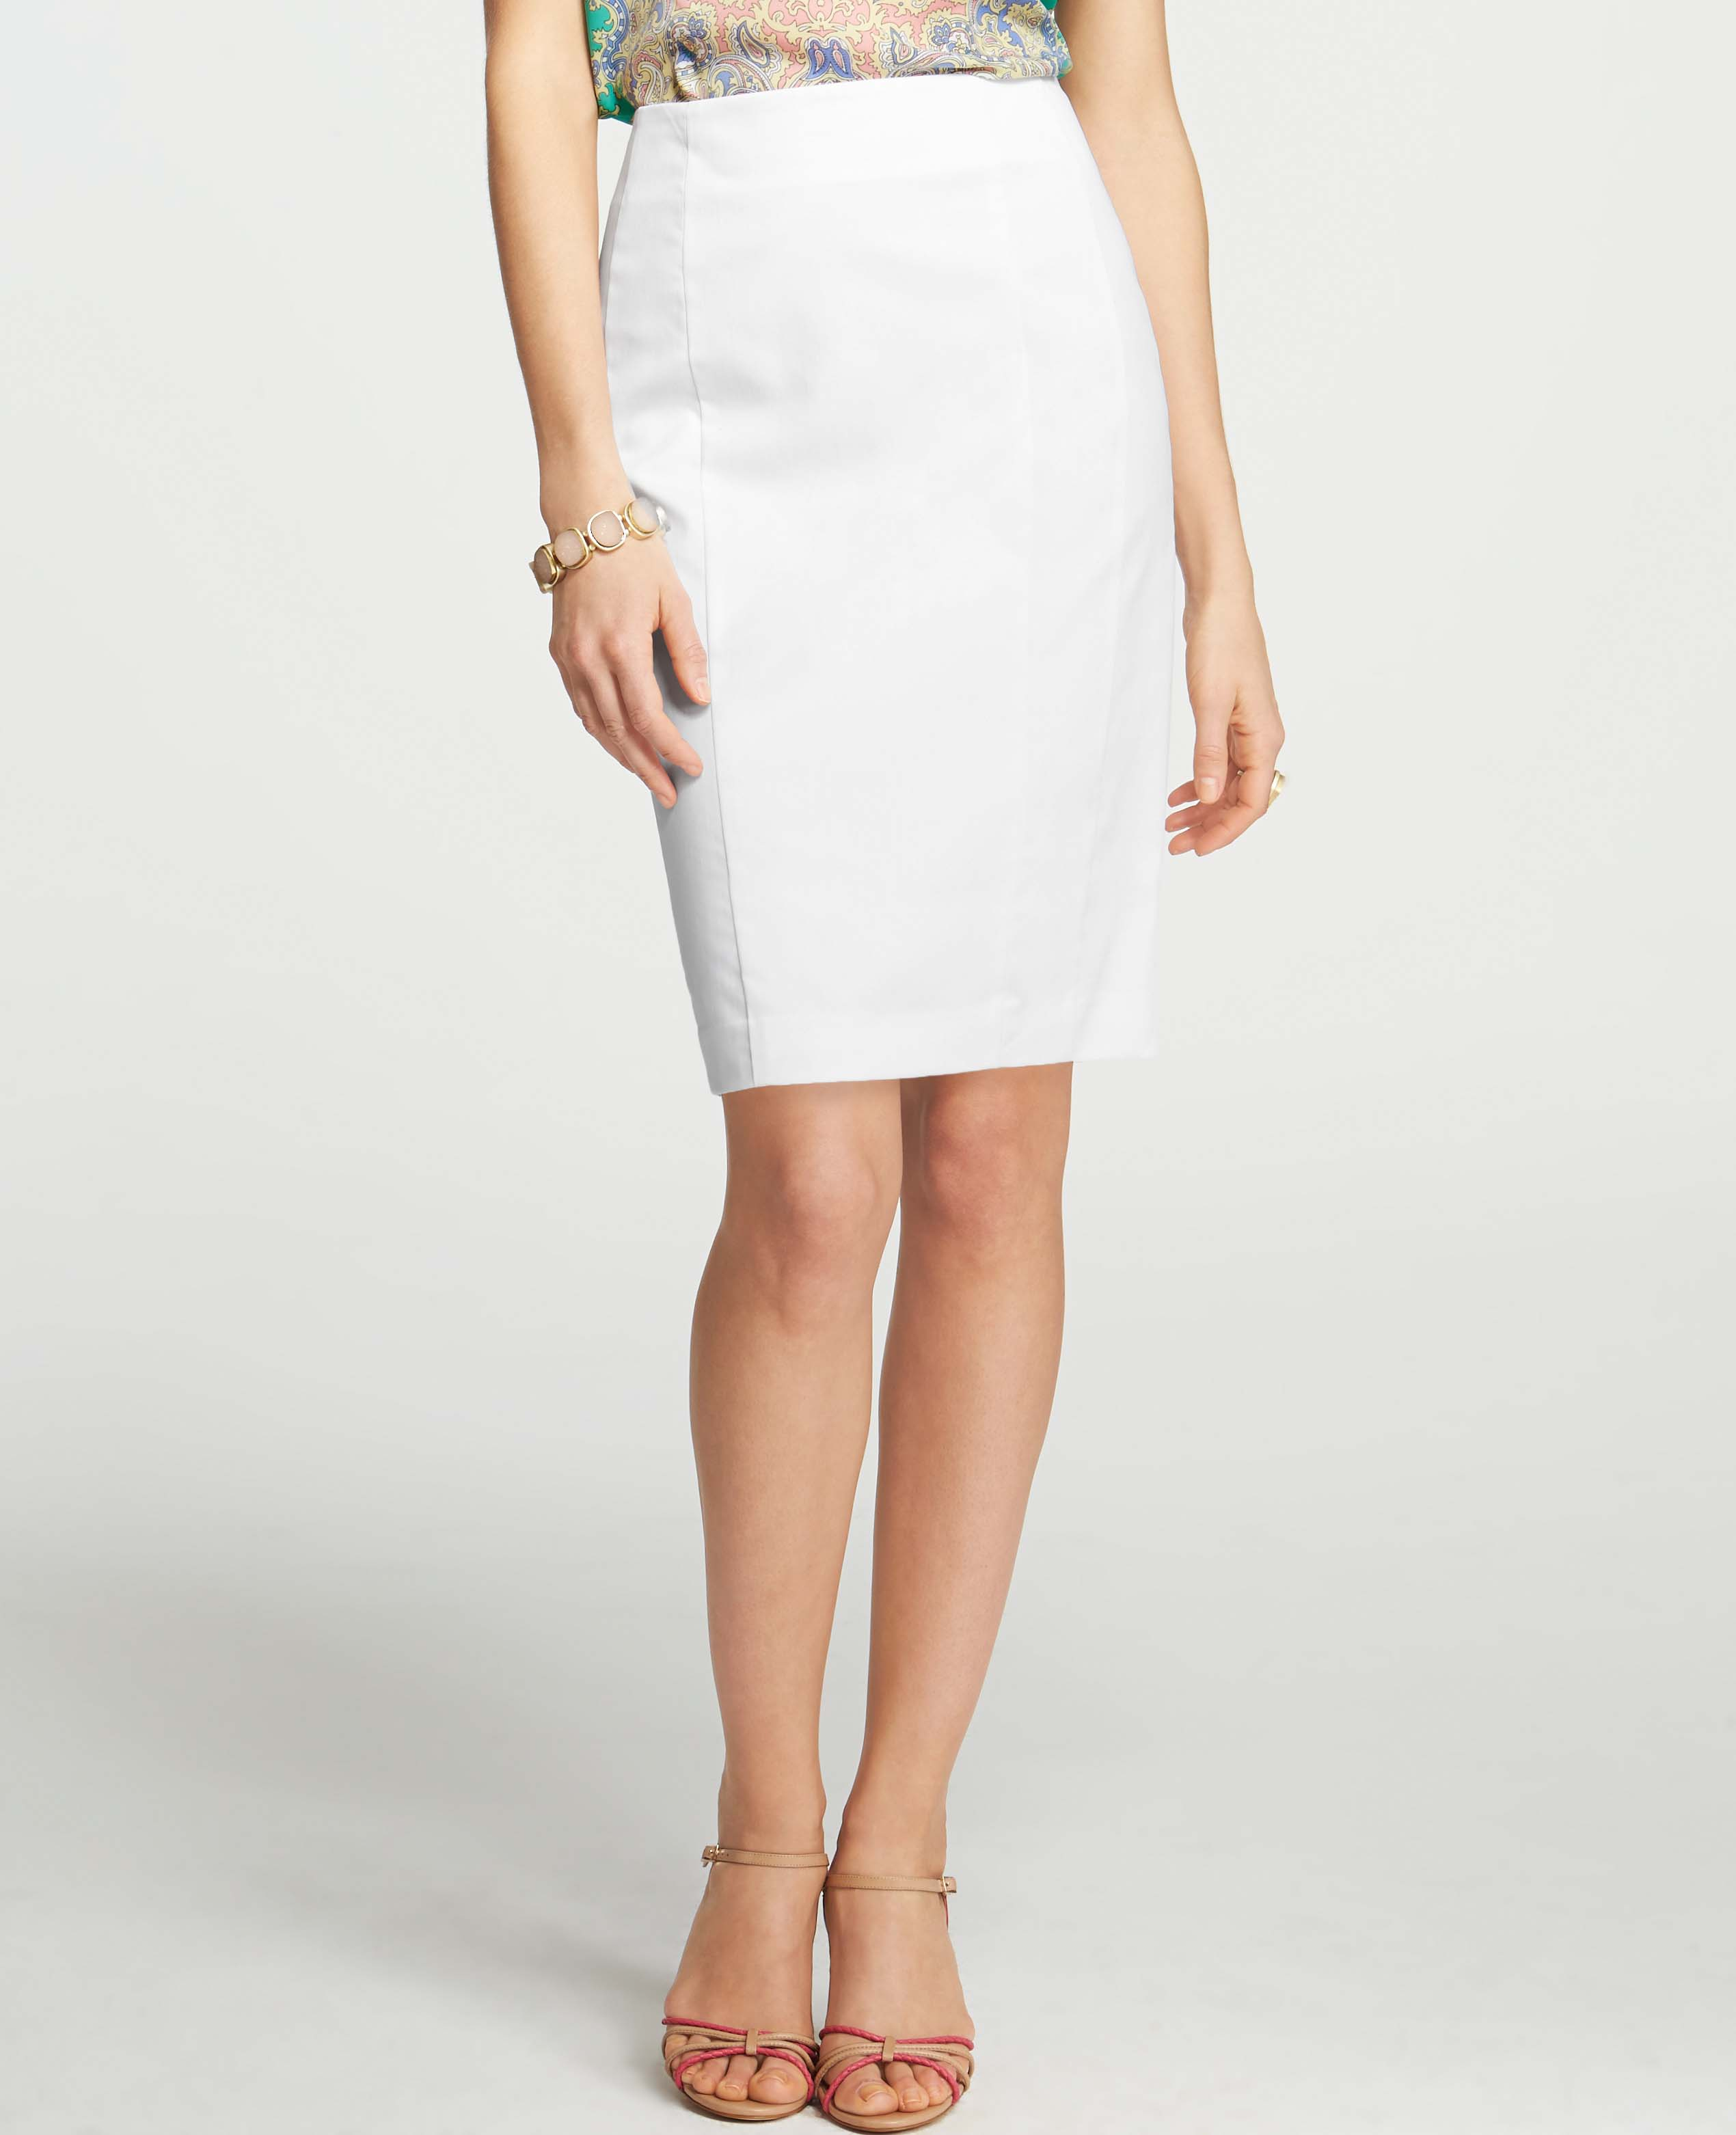 Ann taylor Cotton Sateen Pencil Skirt in White | Lyst